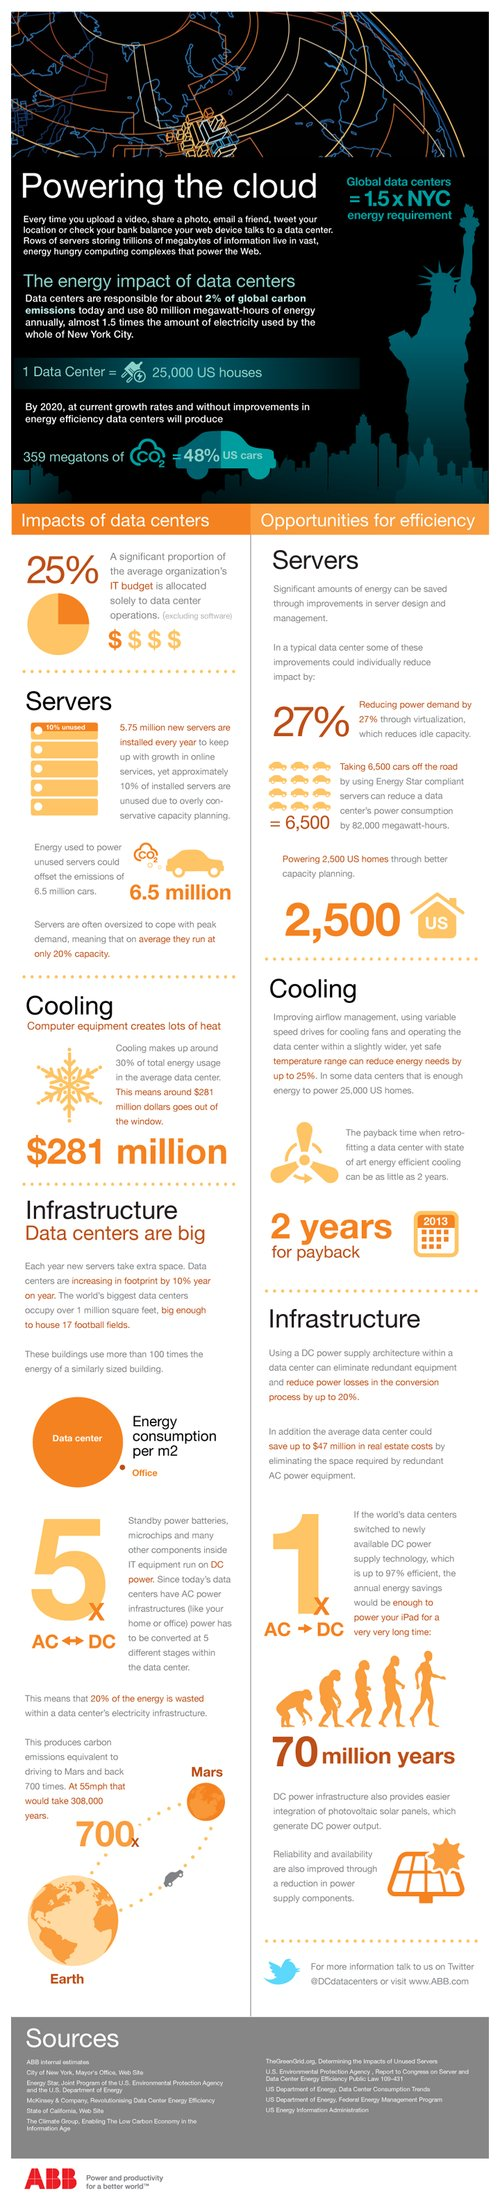 ABB DataCenter infographic